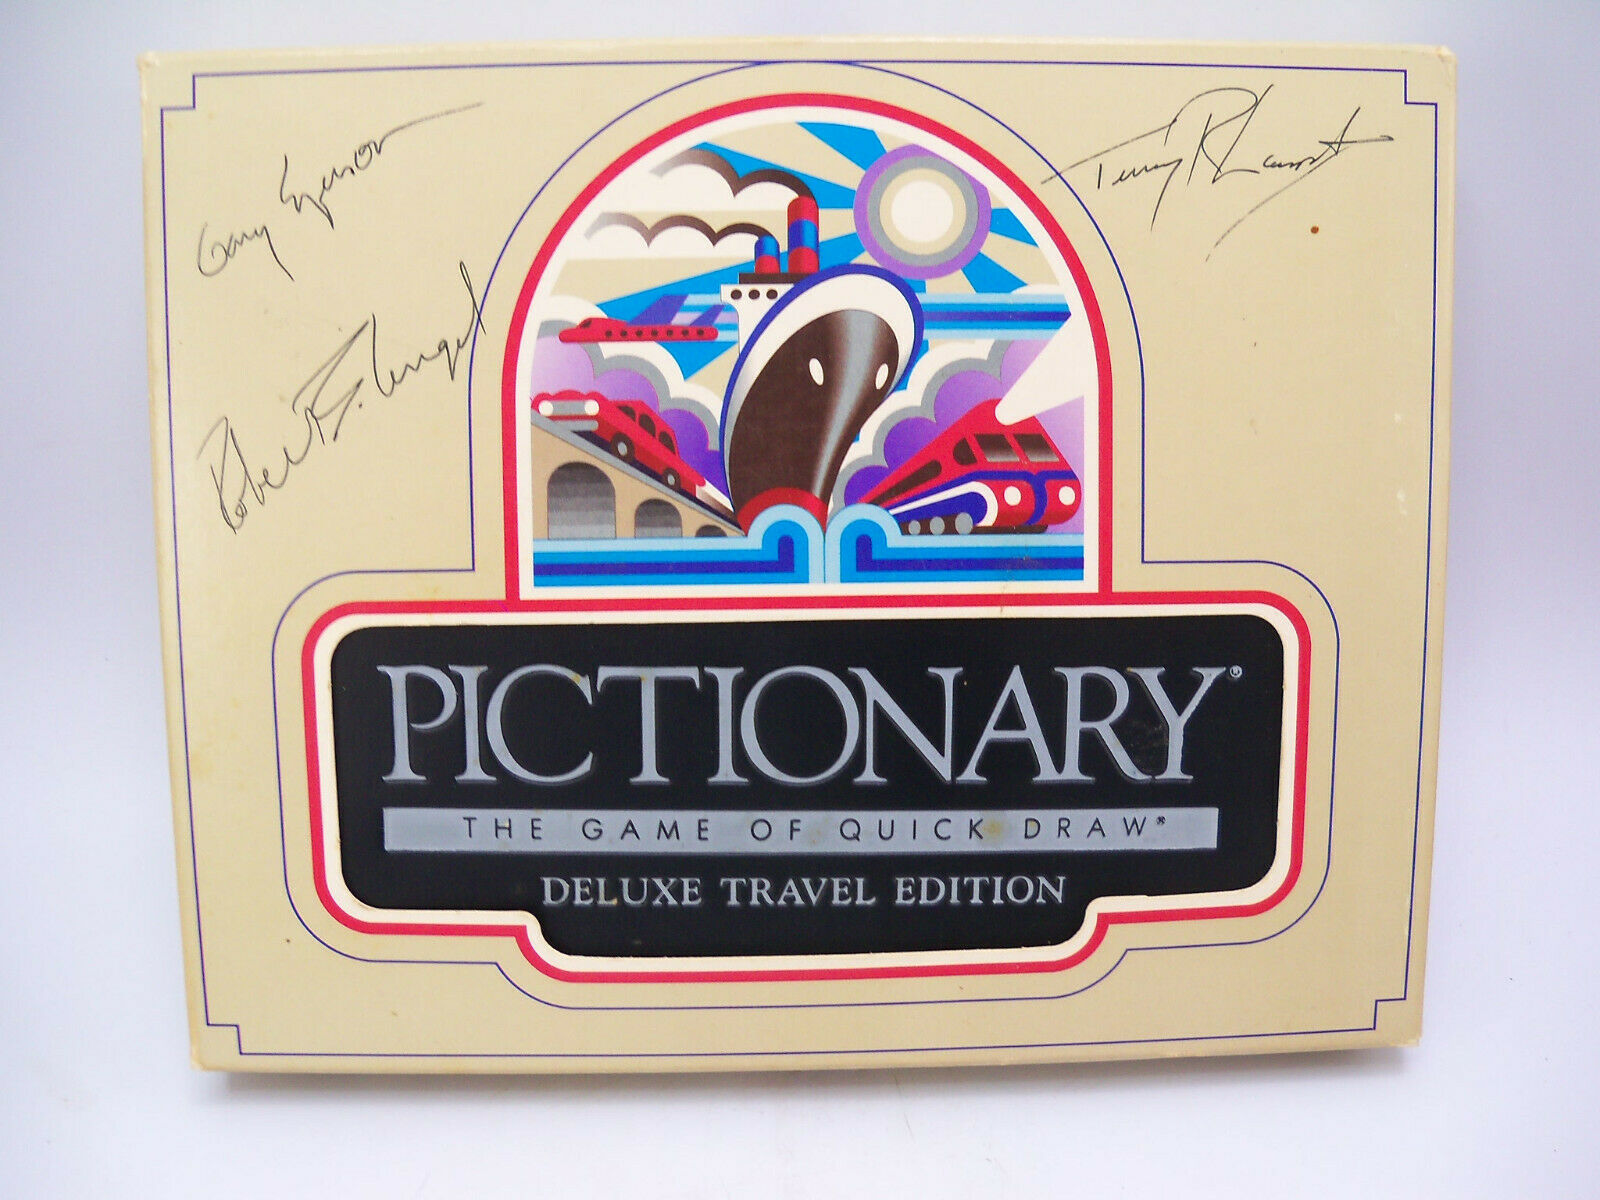 Momentus Signed by Creators Robert Angel PICTIONARY Deluxe Travel Edition 1985